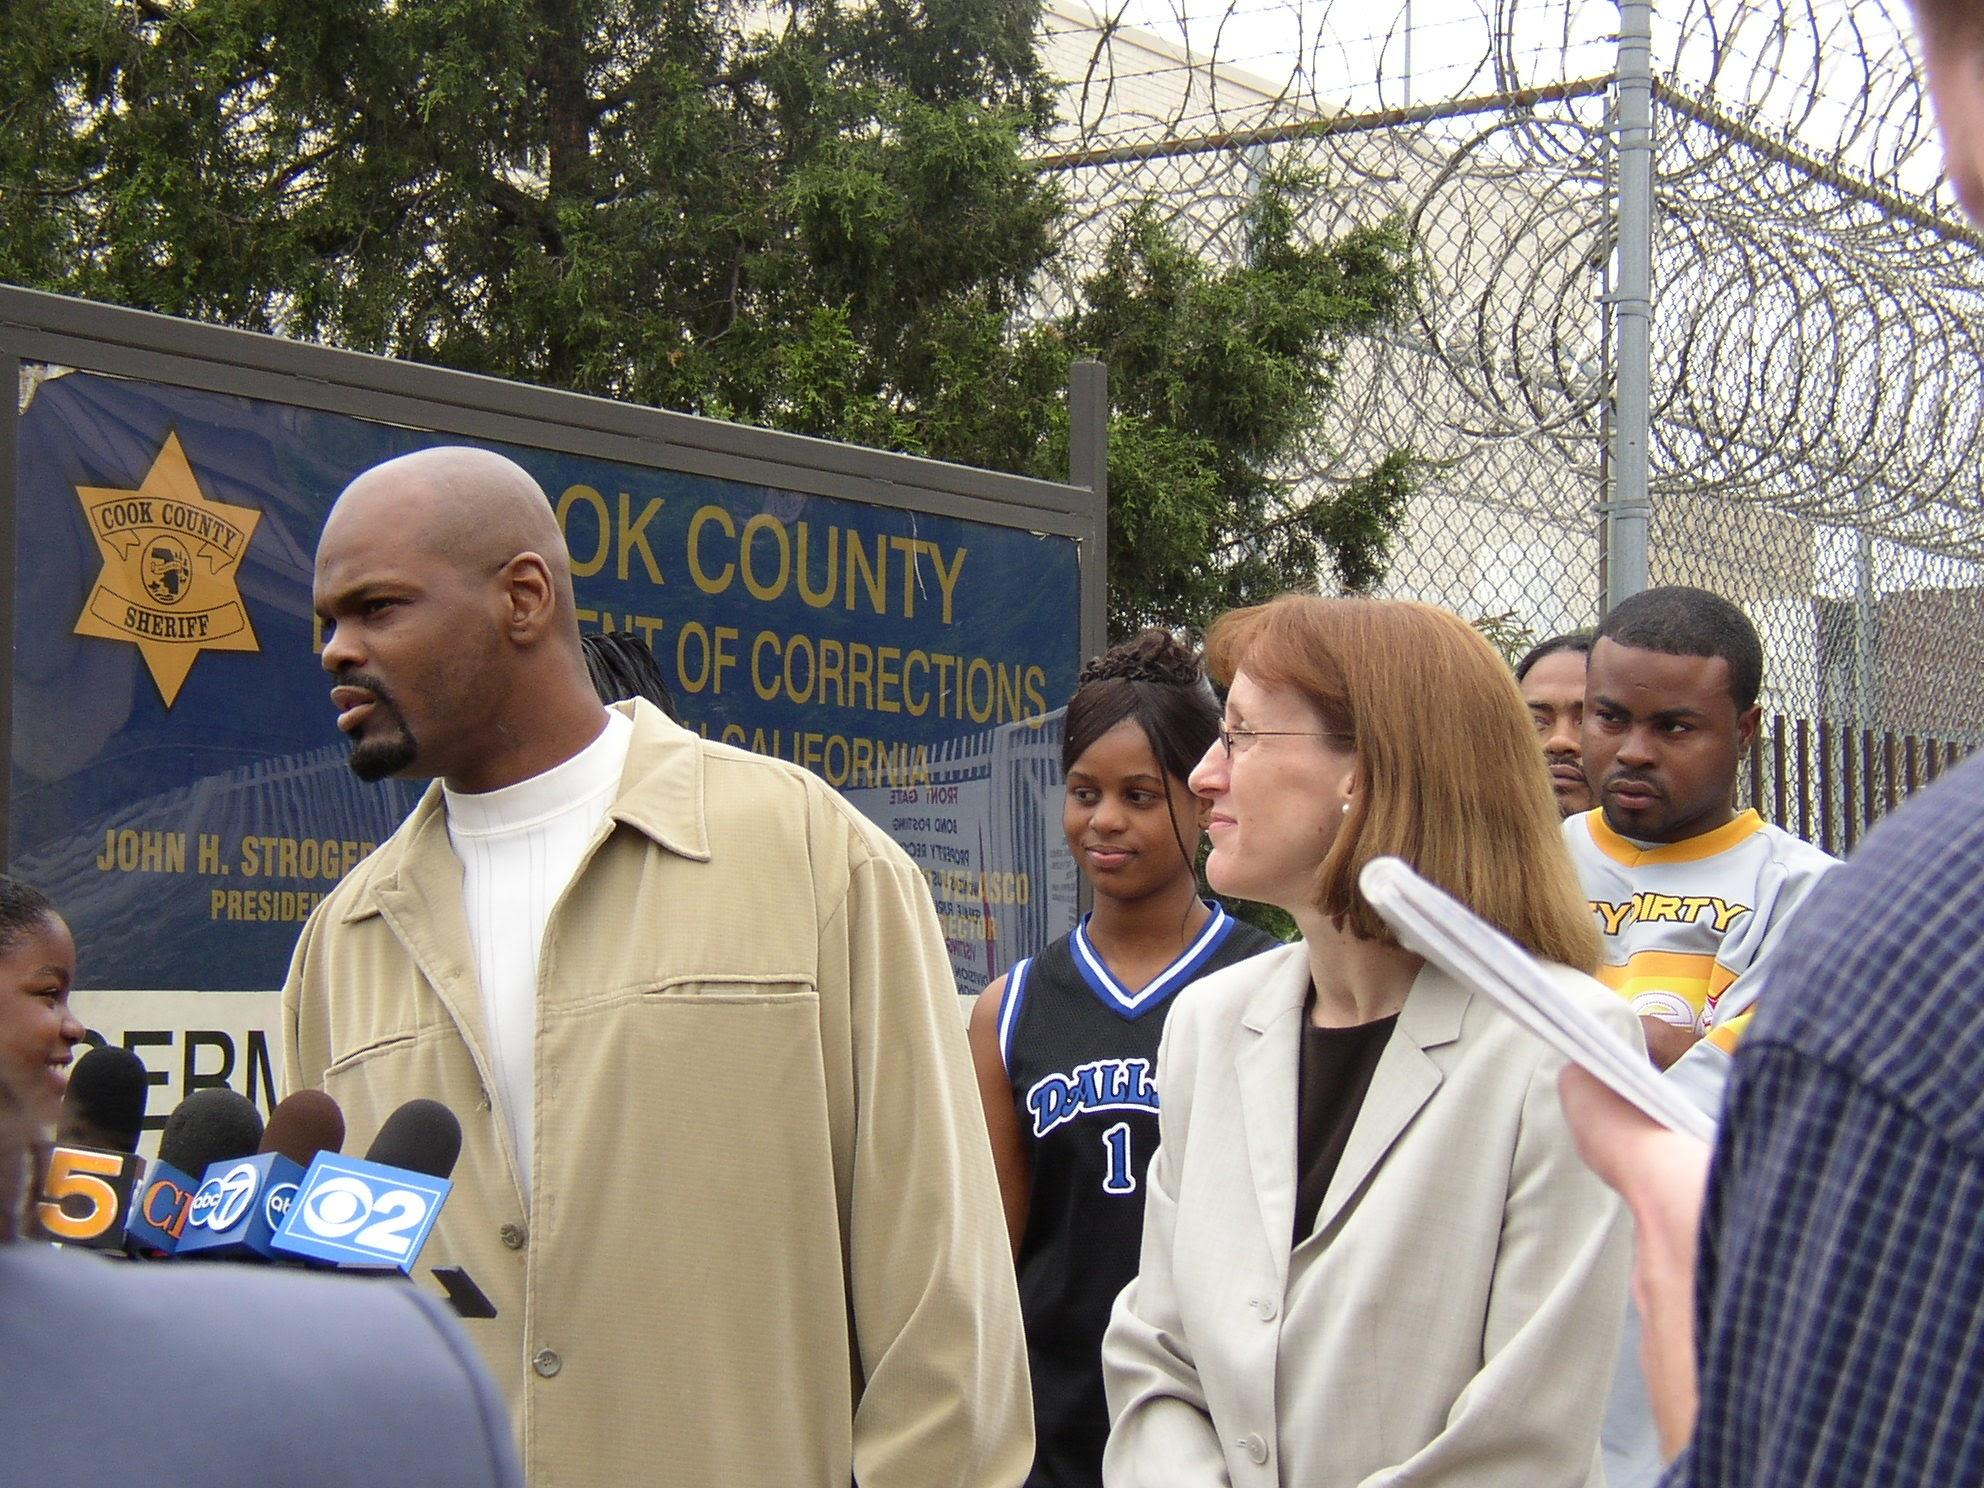 Chicago native Dana Holland speaks to the press after being released from prison in June 2003. He had served more than 3,500 days before being exonerated. (Courtesy of Karen Daniel / Center on Wrongful Convictions)